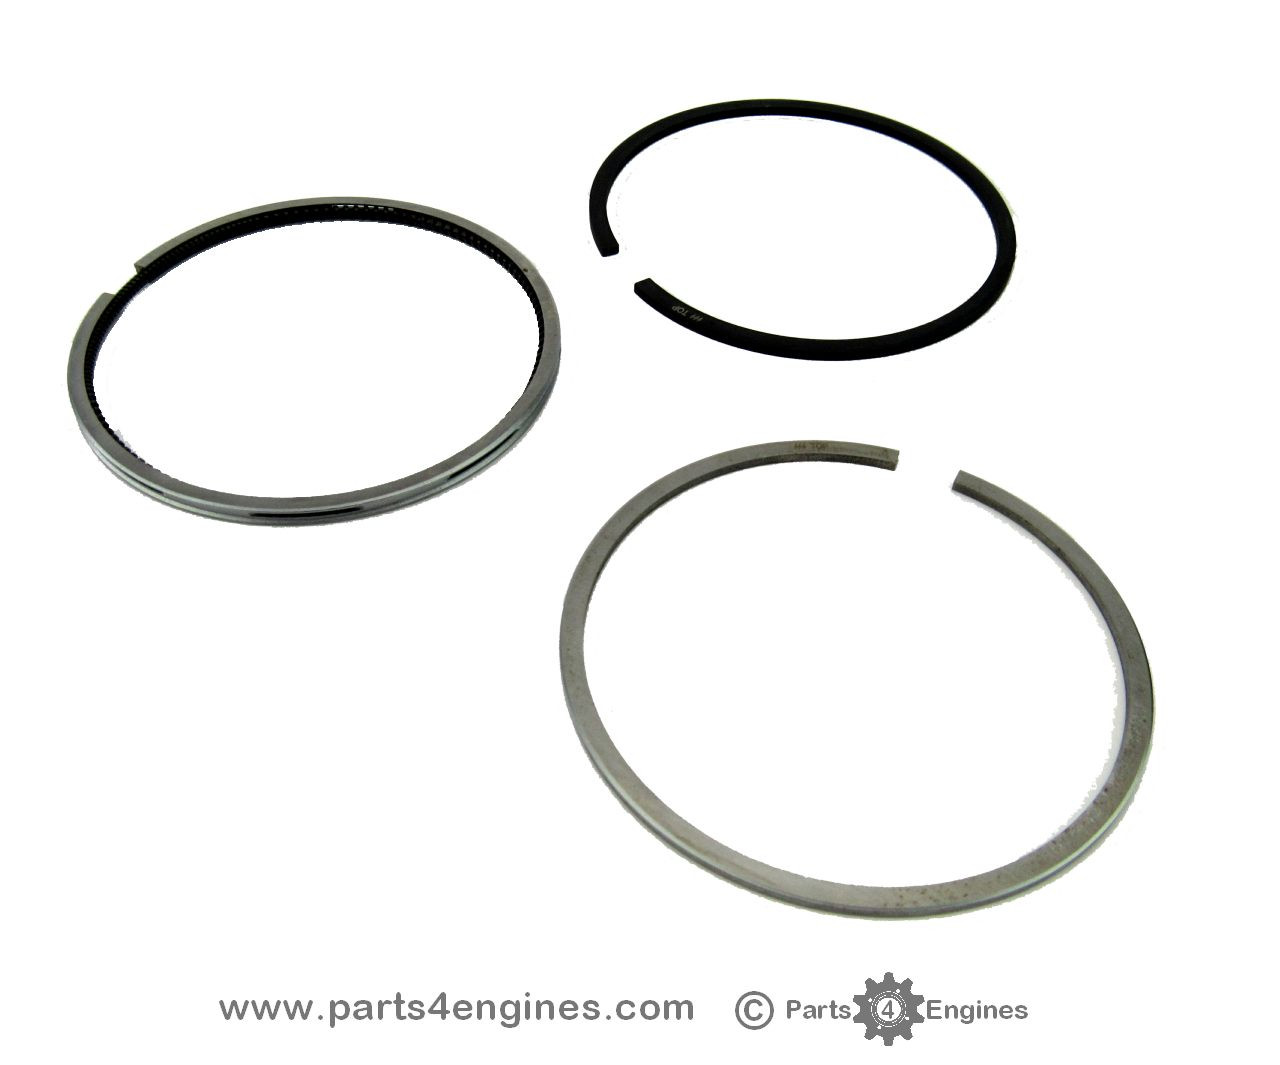 Volvo Penta 2001 Piston Ring set, from parts4engines.com